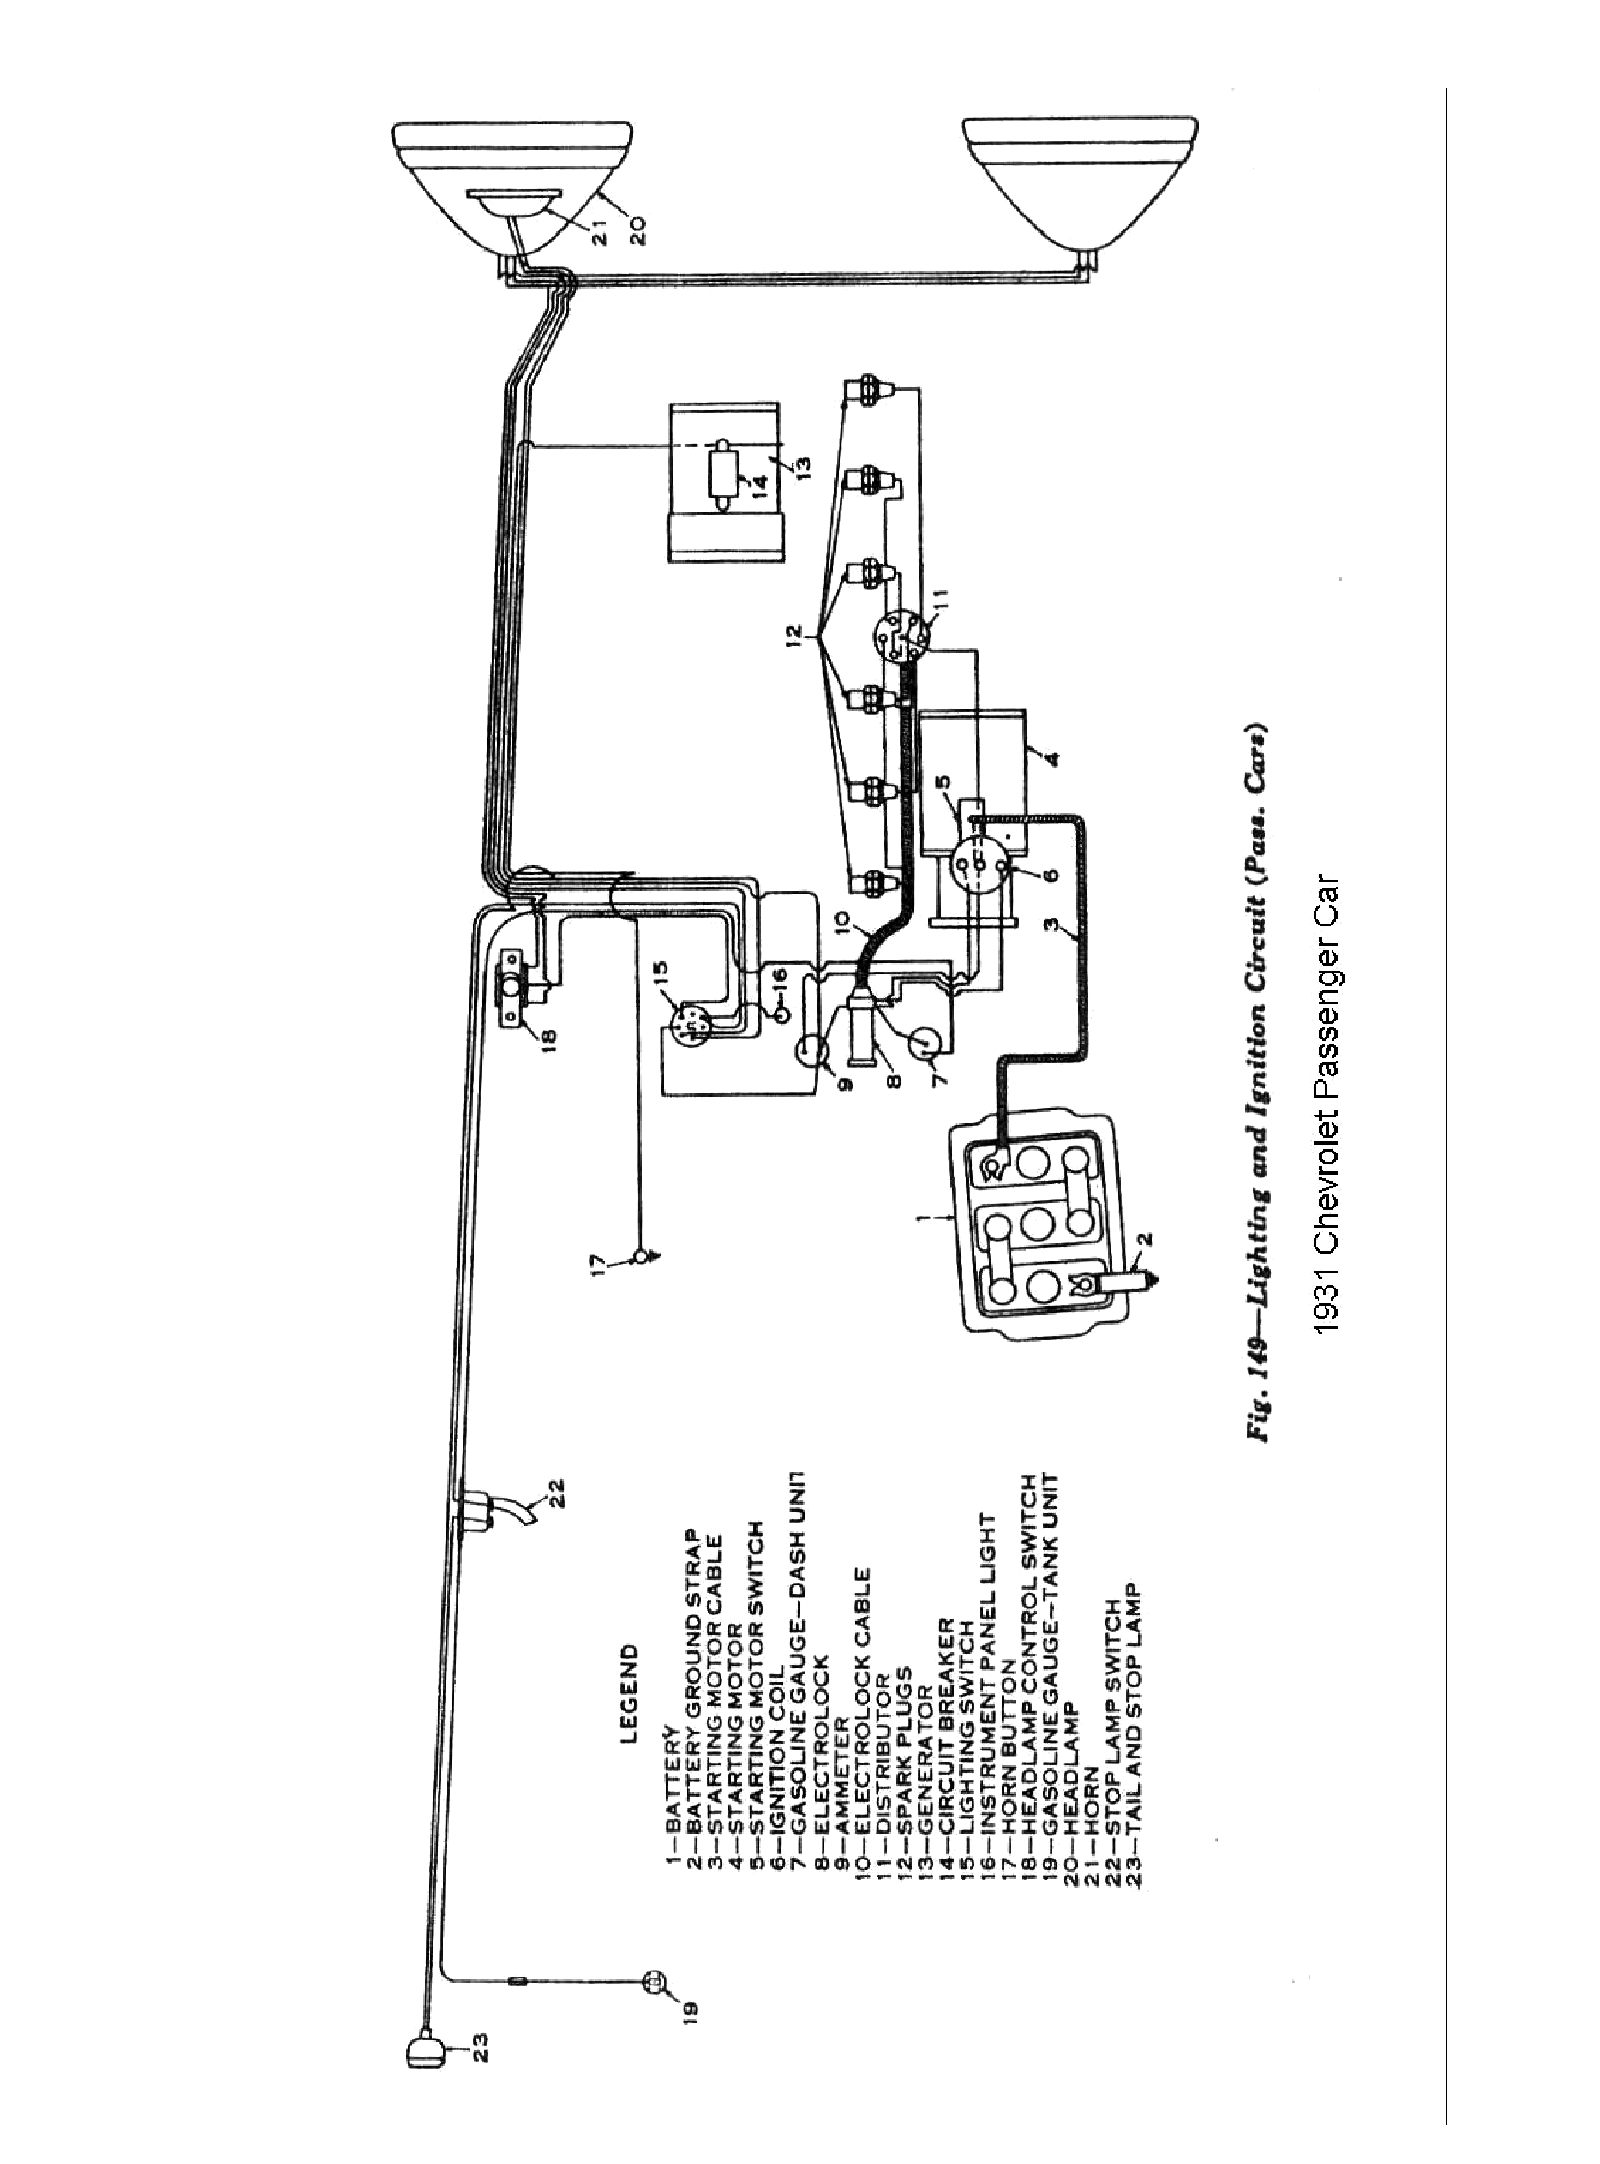 hight resolution of chevy 235 engine diagram wiring diagram forward 1960 chevy 235 engine diagram